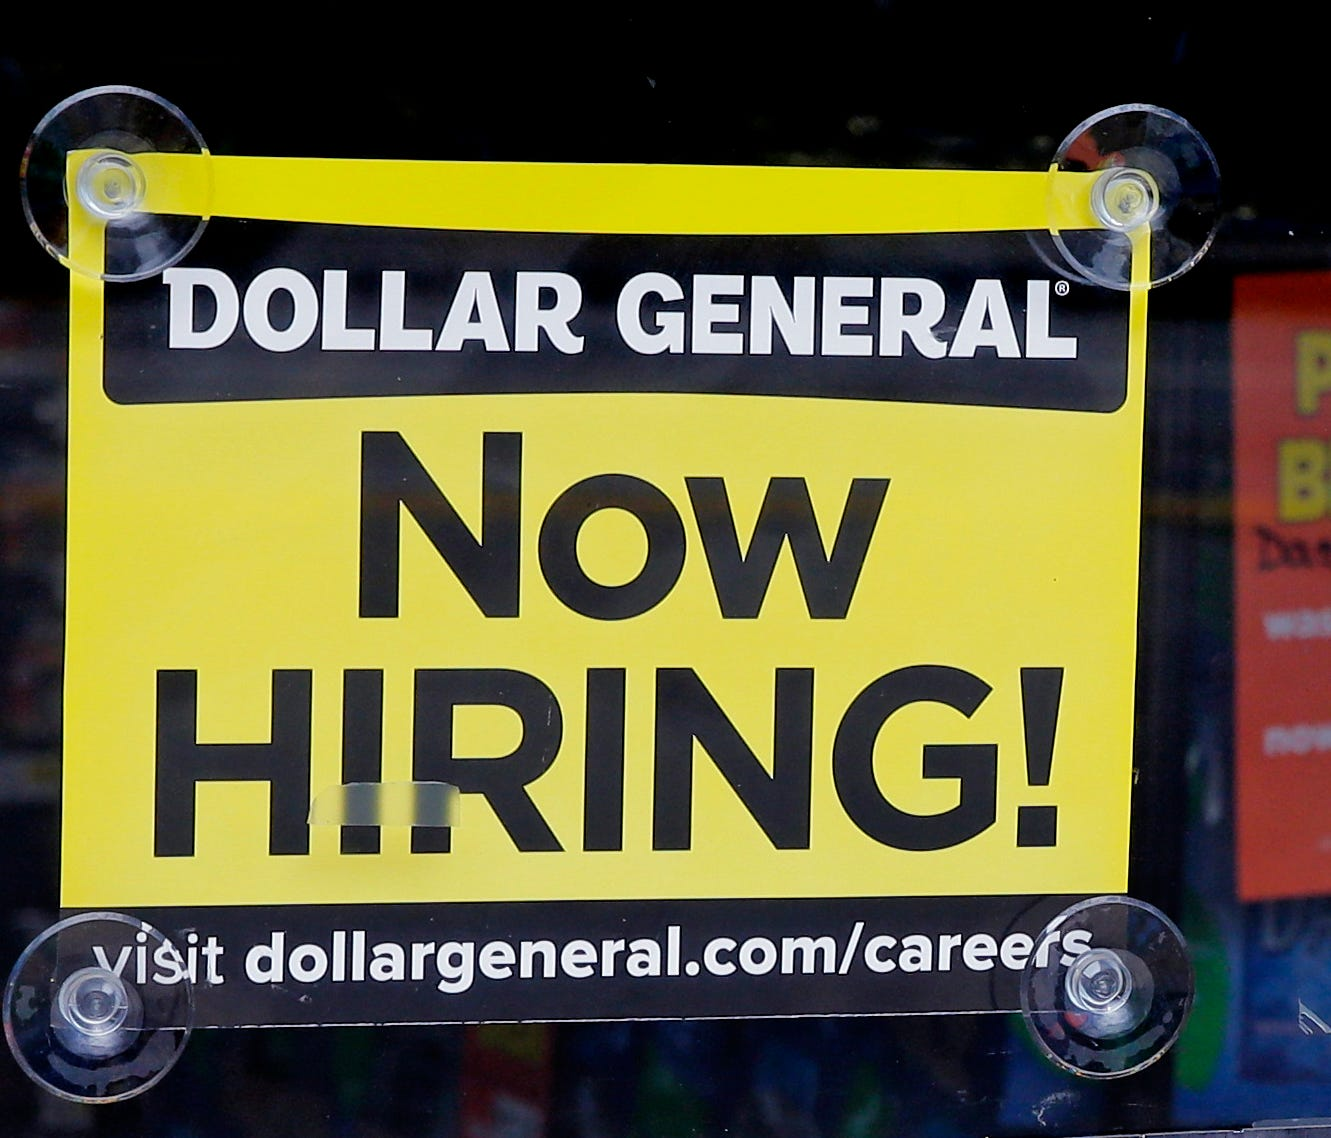 File photo taken in 2016 shows a hiring sign at a Dollar General store in Methuen, Mass.